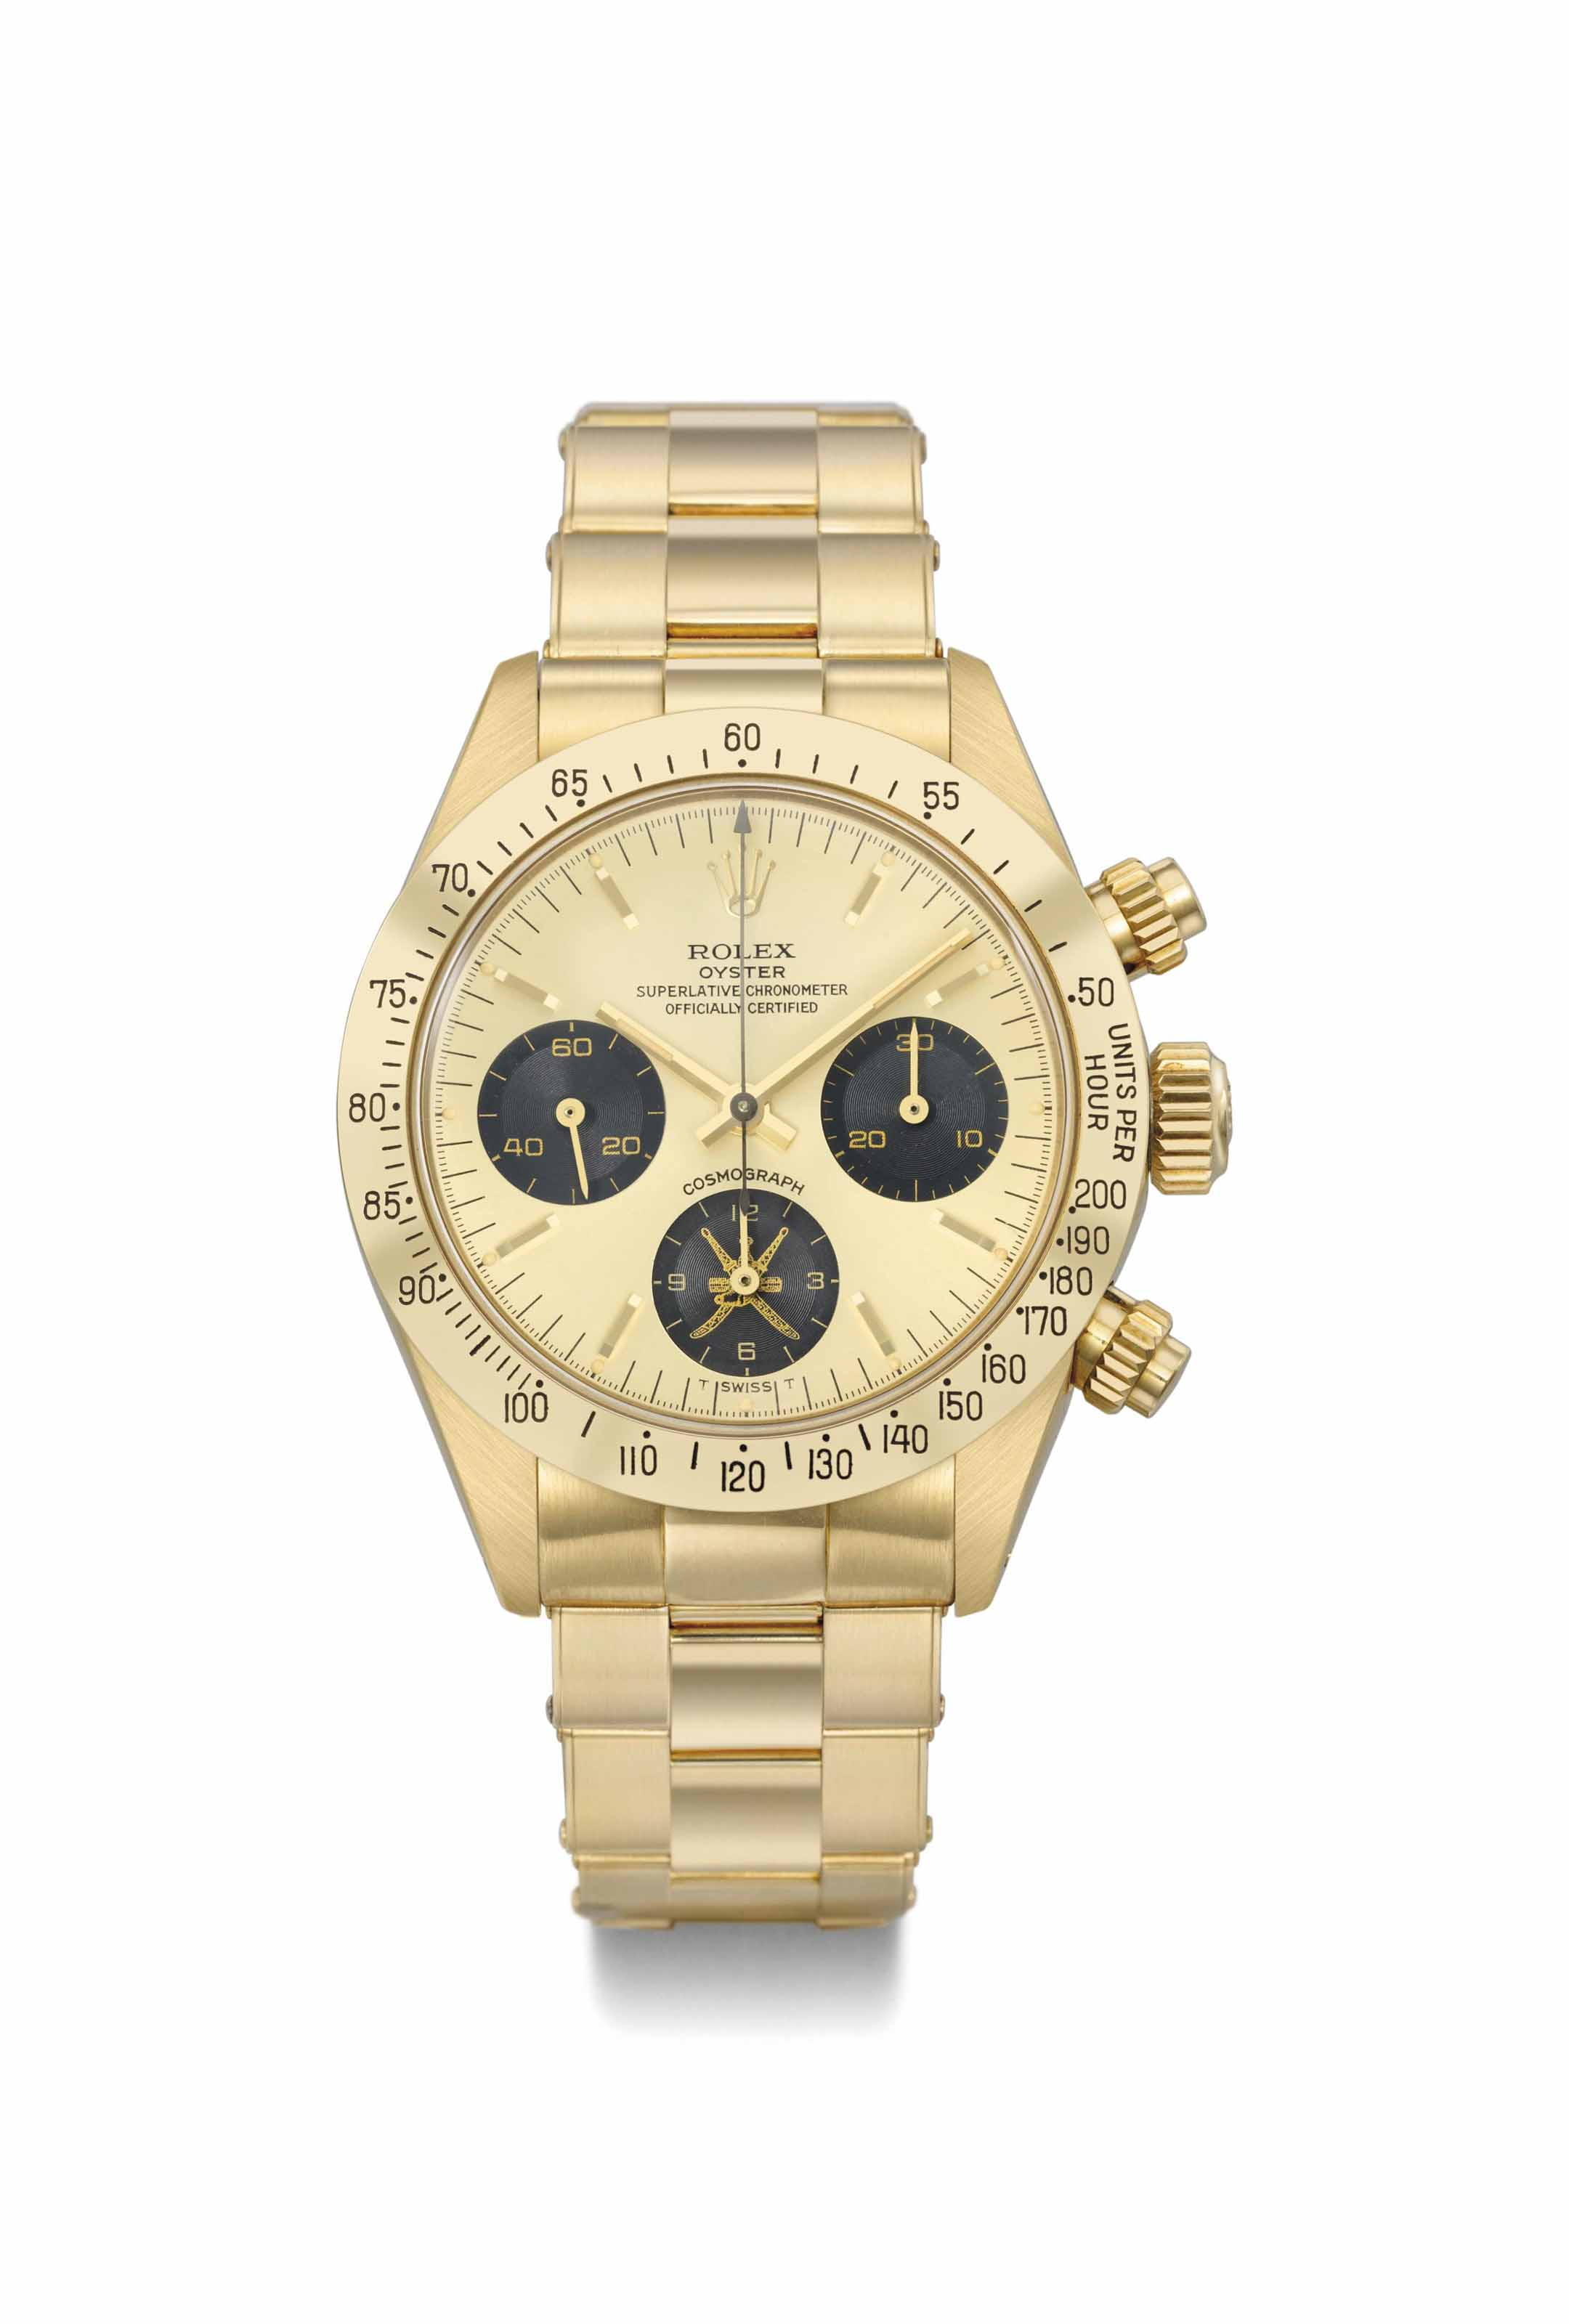 Rolex. An extremely rare and v